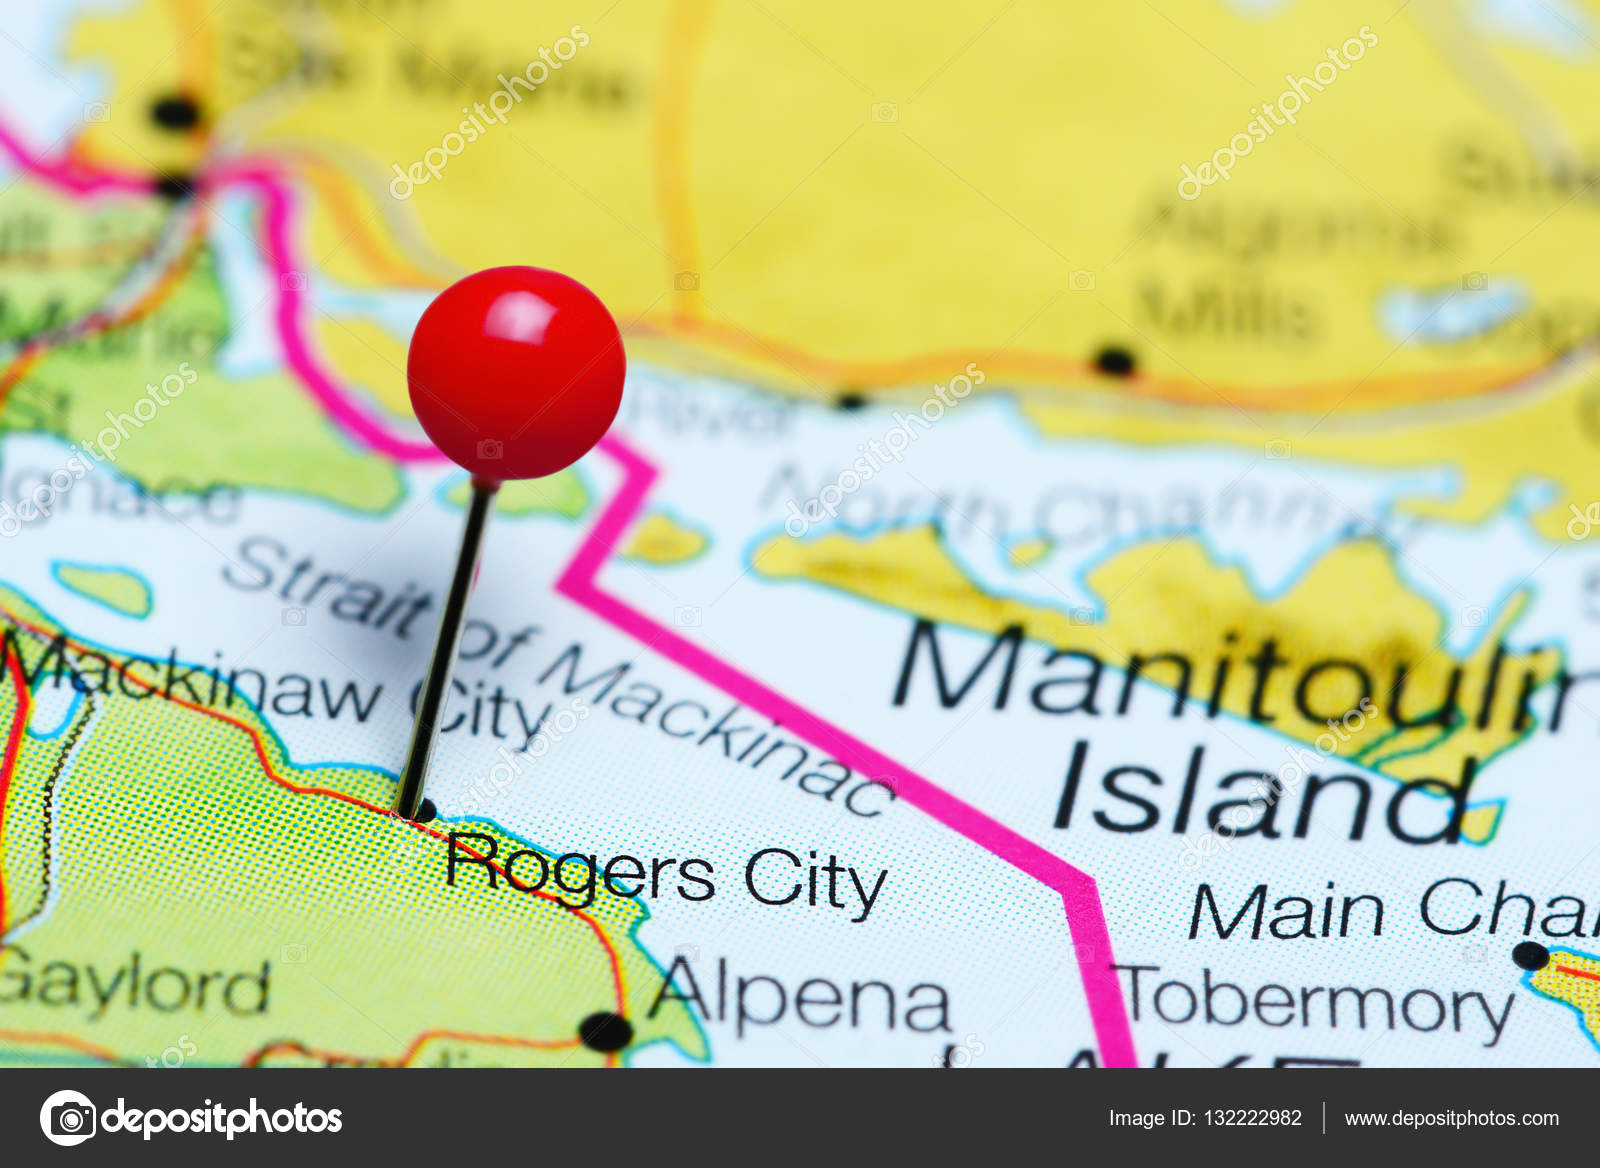 Rogers City Pinned On A Map Of Michigan Usa Stock Photo